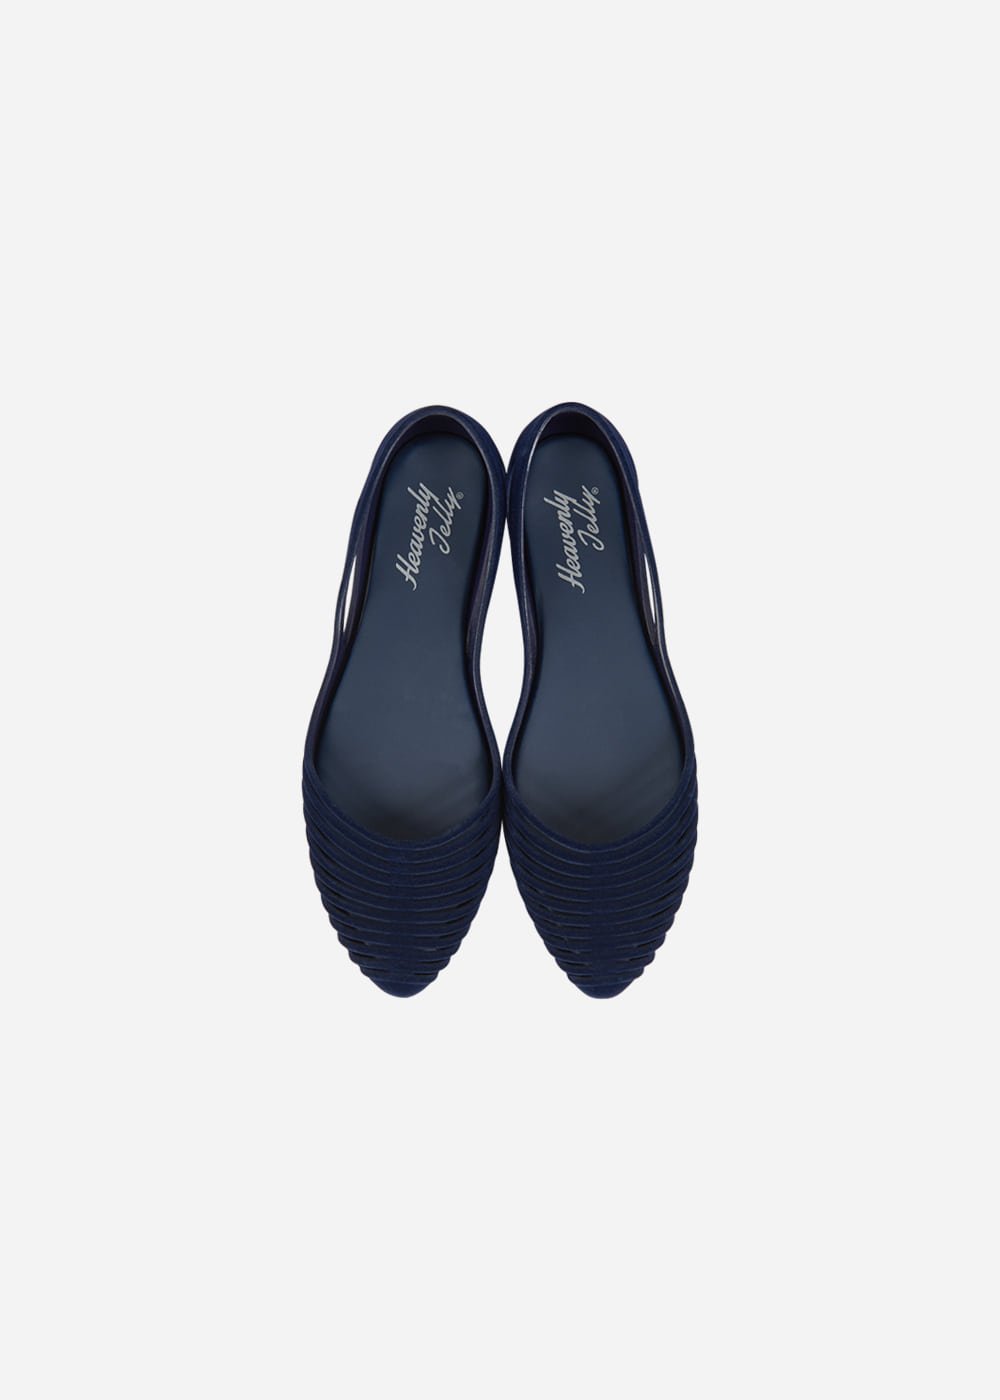 GRACE SUEDE DARK NAVY